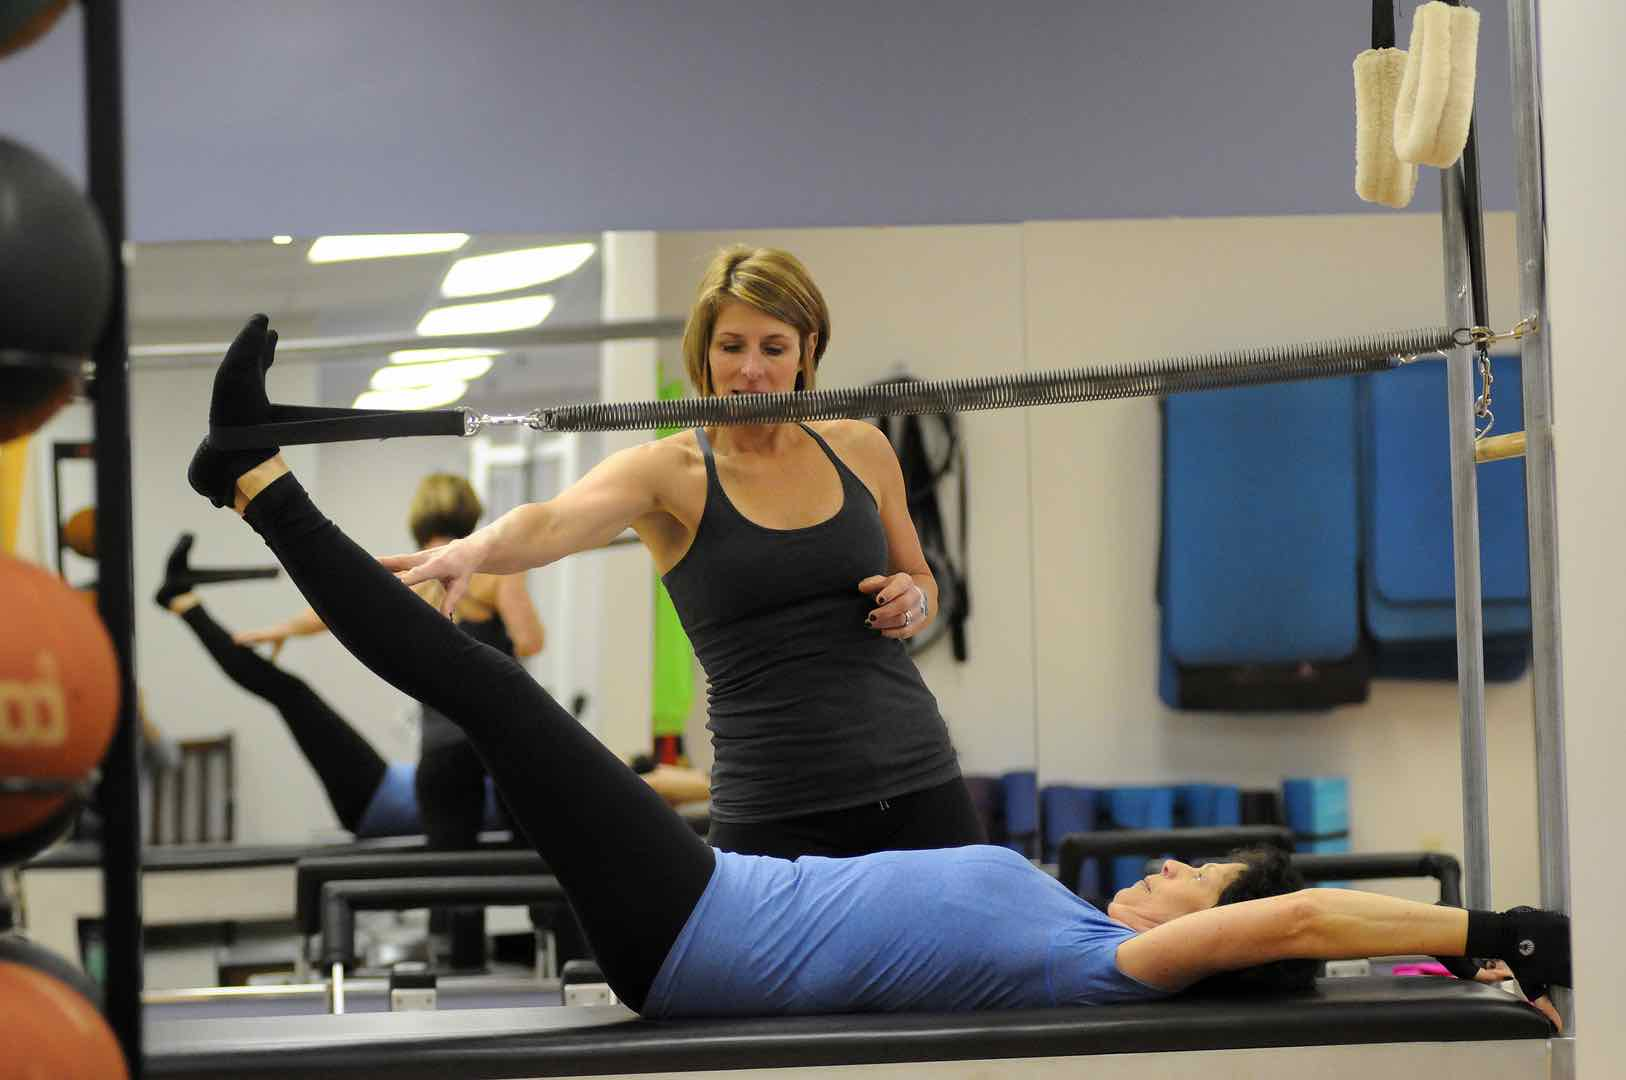 Core exercise training and streaching at FitnessWorks, Inc